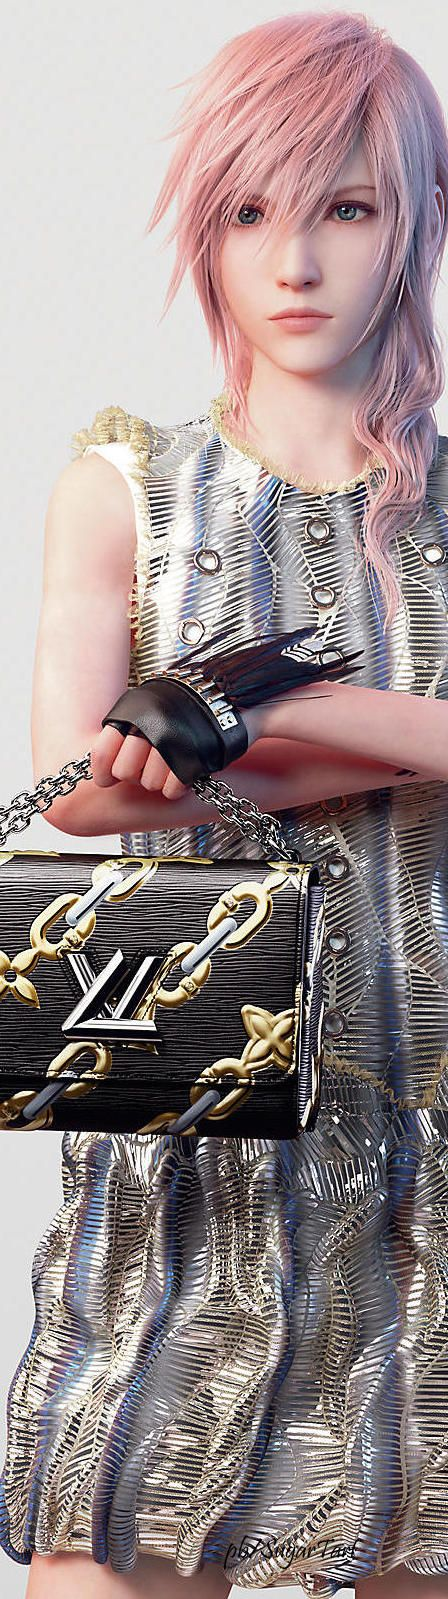 Louis Vuitton S/S 2016 I almost fell over when I saw this in Elle magazine, girls don't use lightning as a roll model for how to look, you will never get on her graphics level unless you install a new HD card